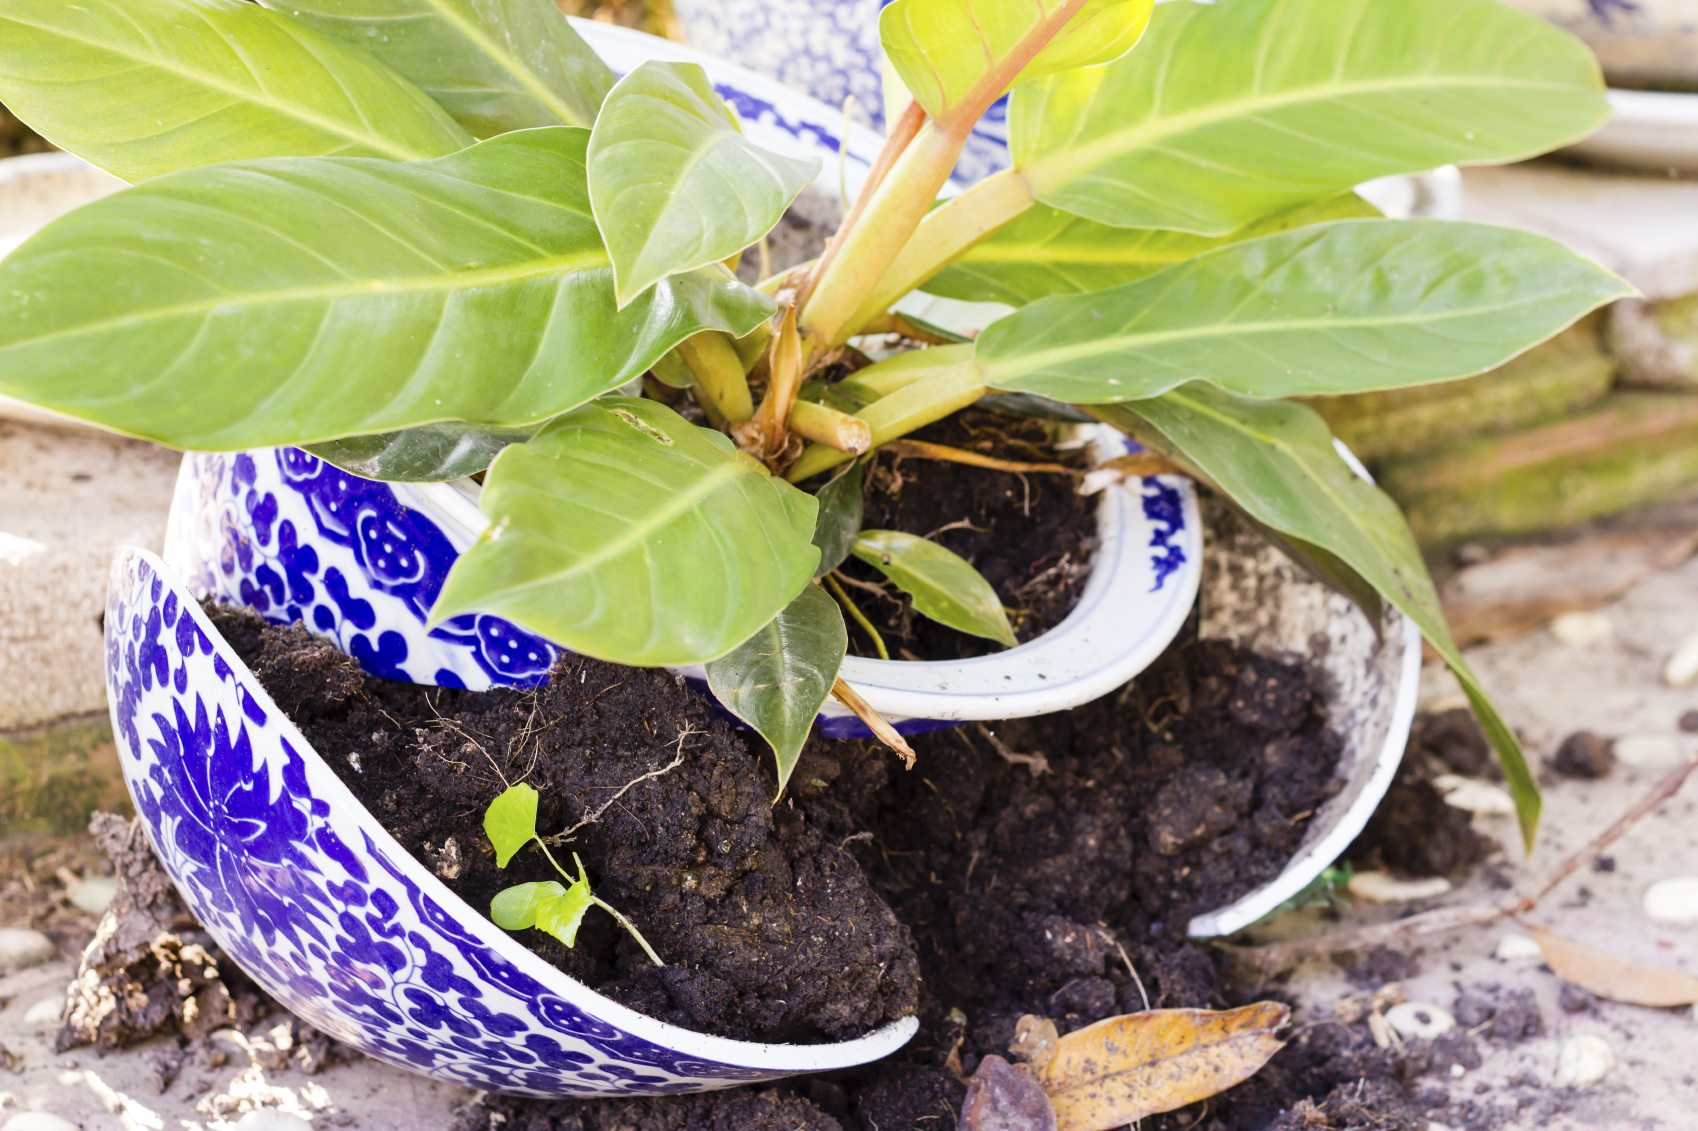 Broken Pot Garden Ideas: How To Make A Garden From Broken Pots